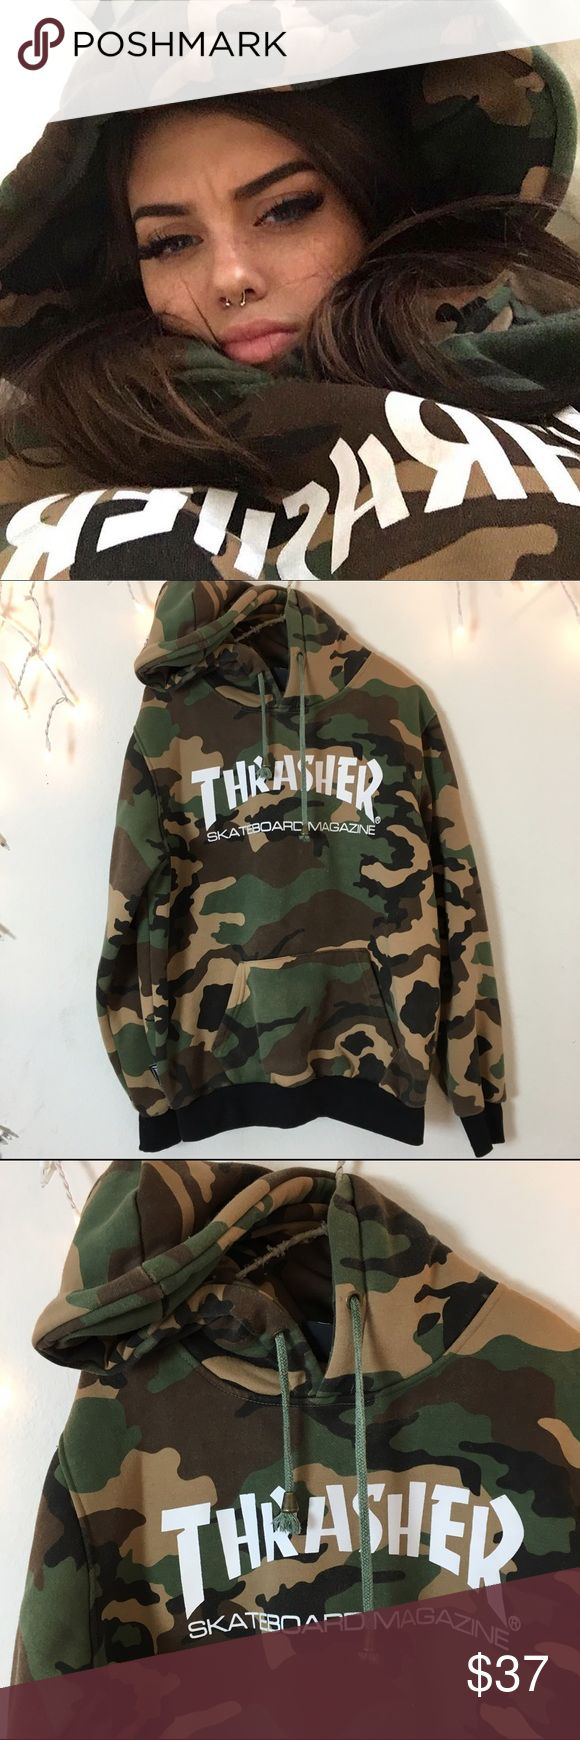 Thrasher Camo Sweater Hoodie Authentic thrasher hoodie. Sold out. Super Duper soft inside fleece material Best for women's small or medium oversized fit as seen on Sahar Luna @sahar.luna on Instagram. In great condition colors are slightly faded but white graphic logo is in perfect condition. Brandy Melville Tops Sweatshirts & Hoodies